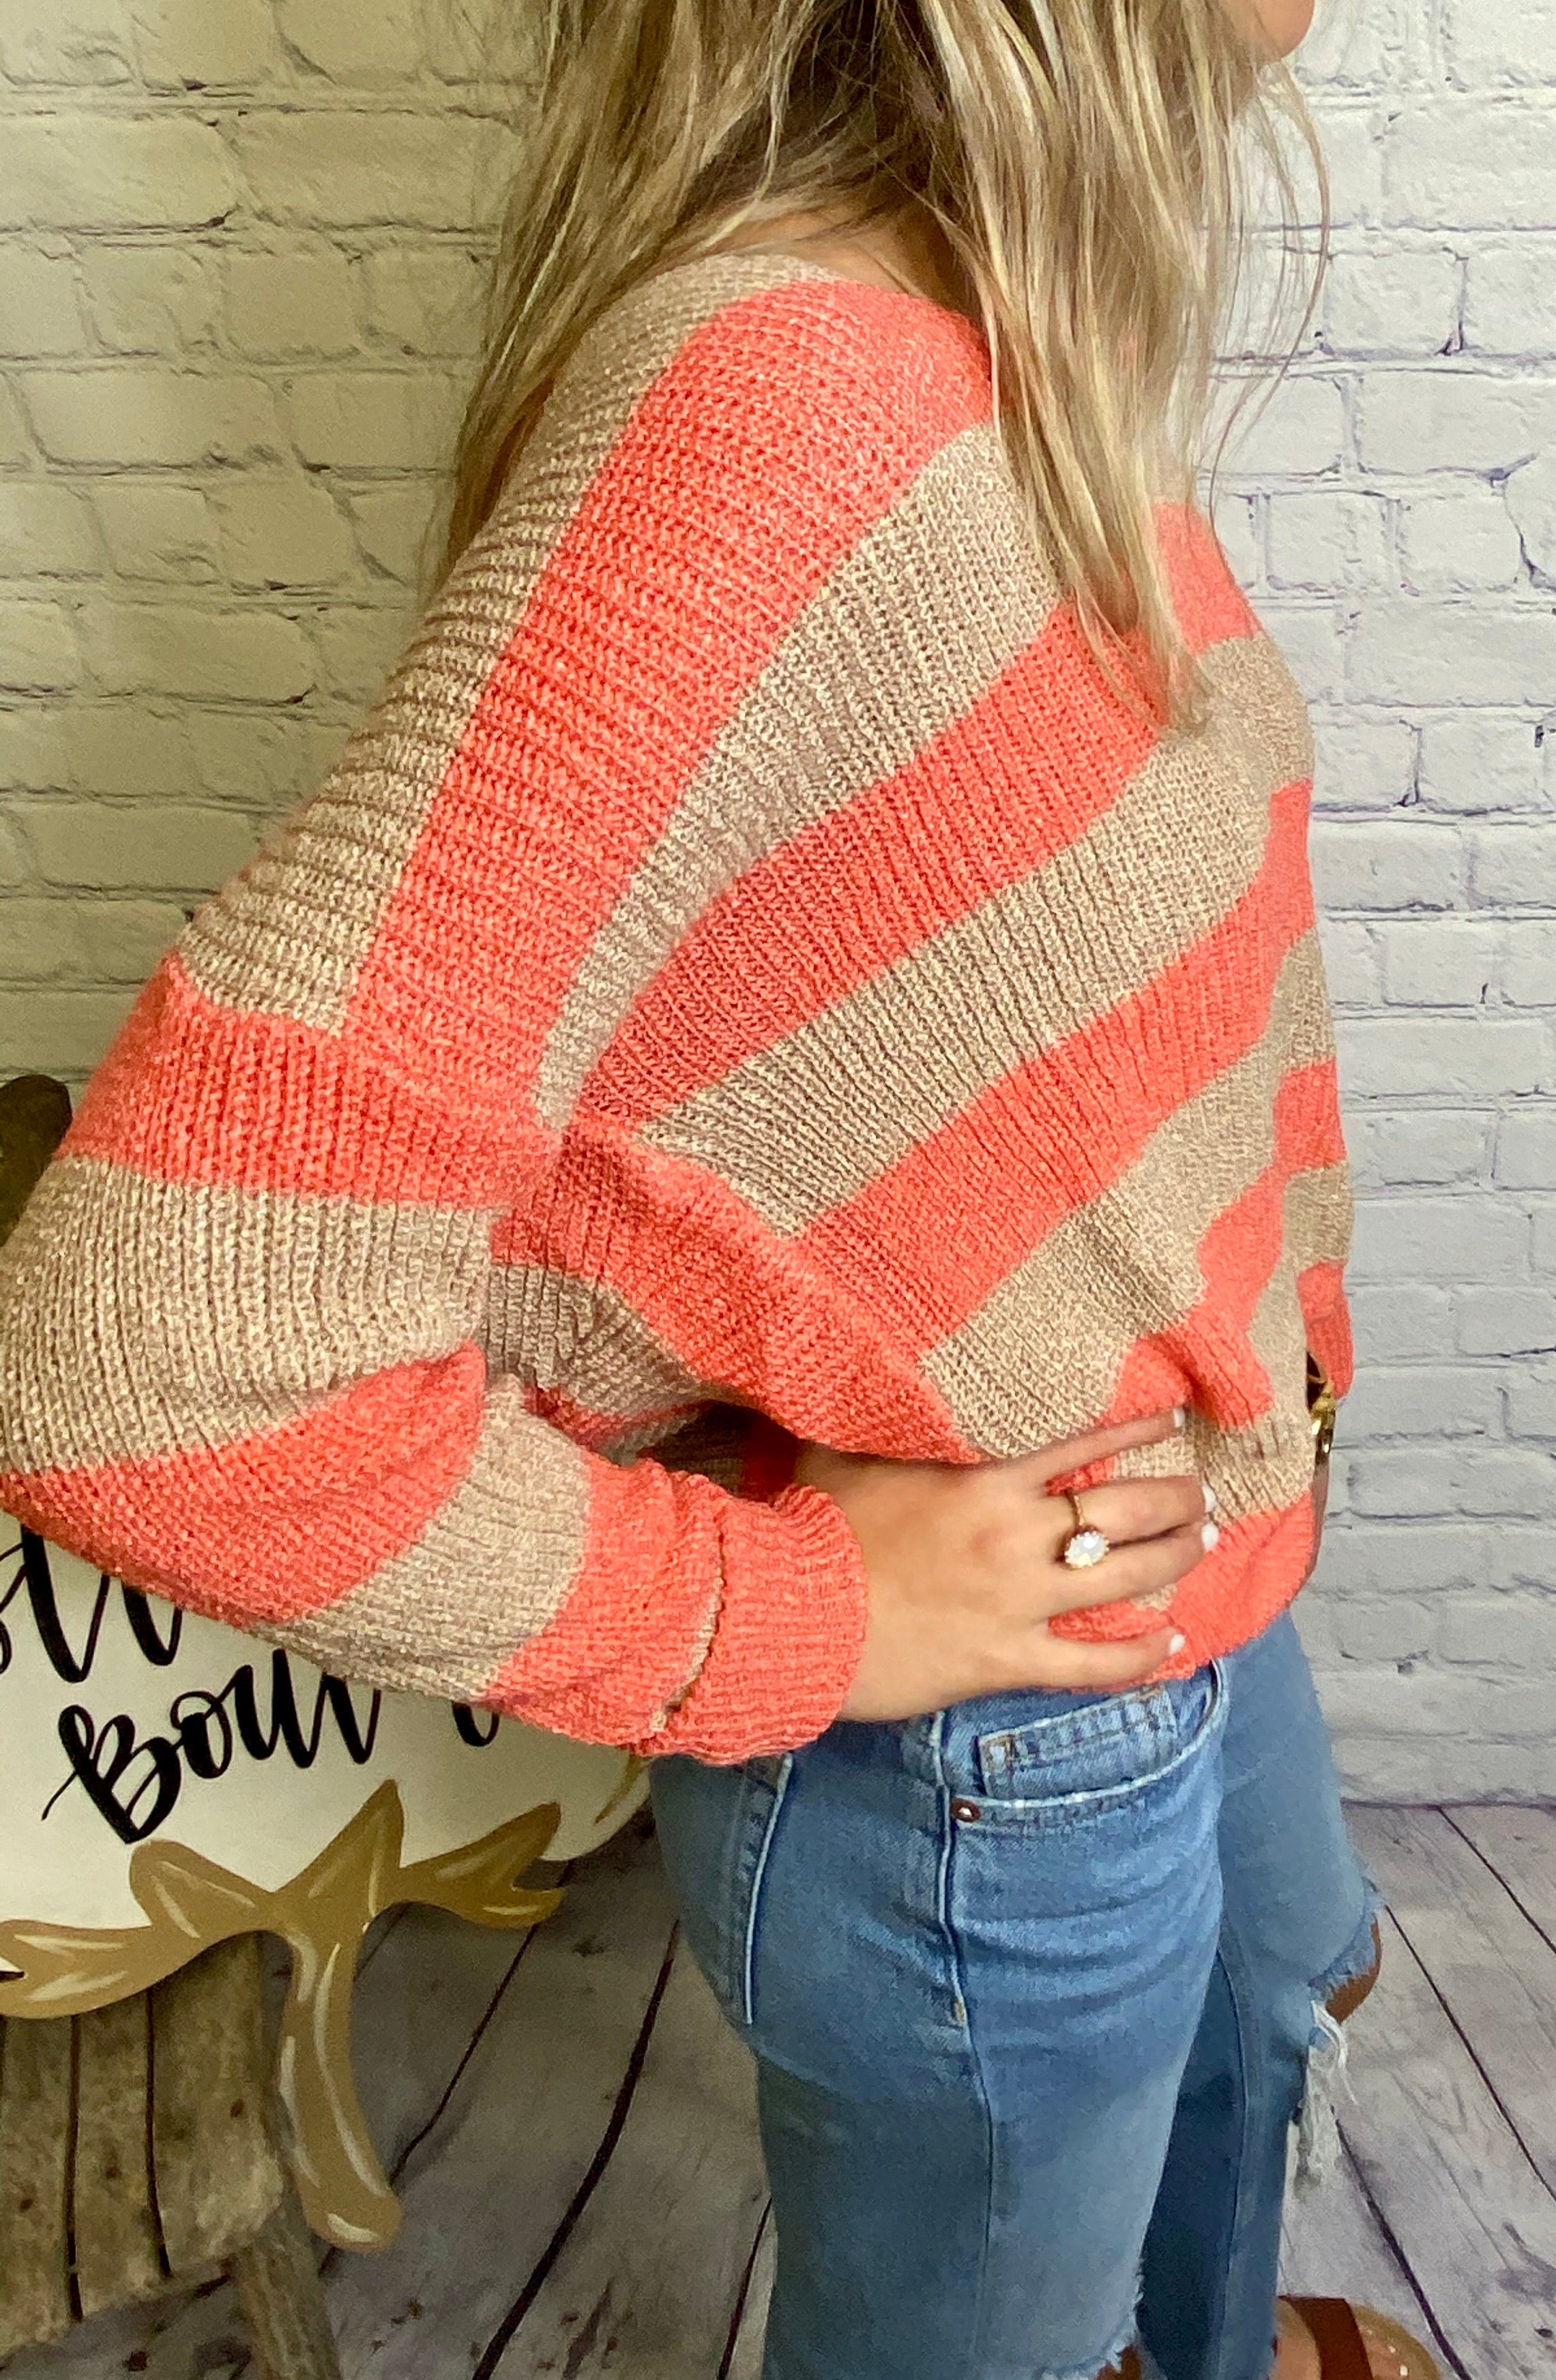 4283-WEEKEND vibes Sweater